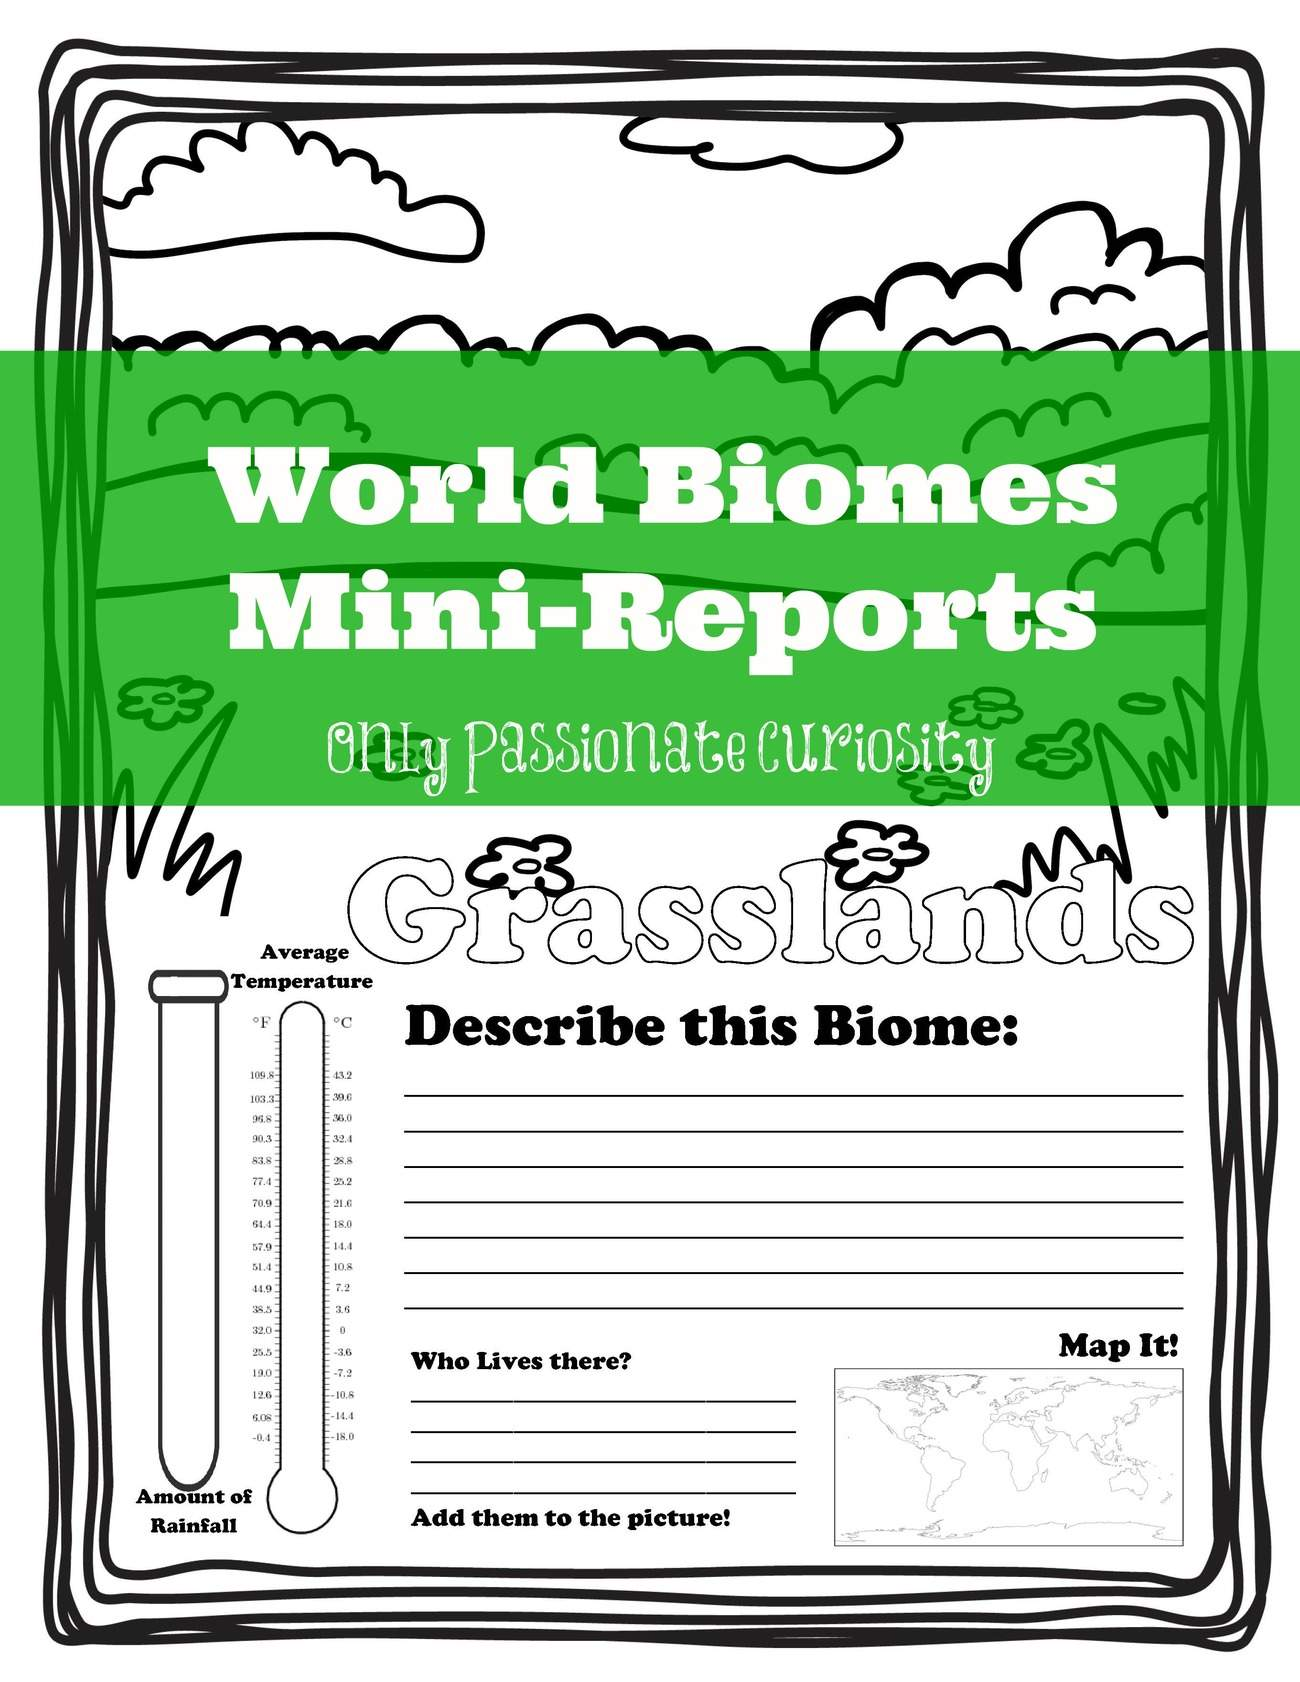 worksheet Biome Worksheets learning about world biomes only passionate curiosity mini reports